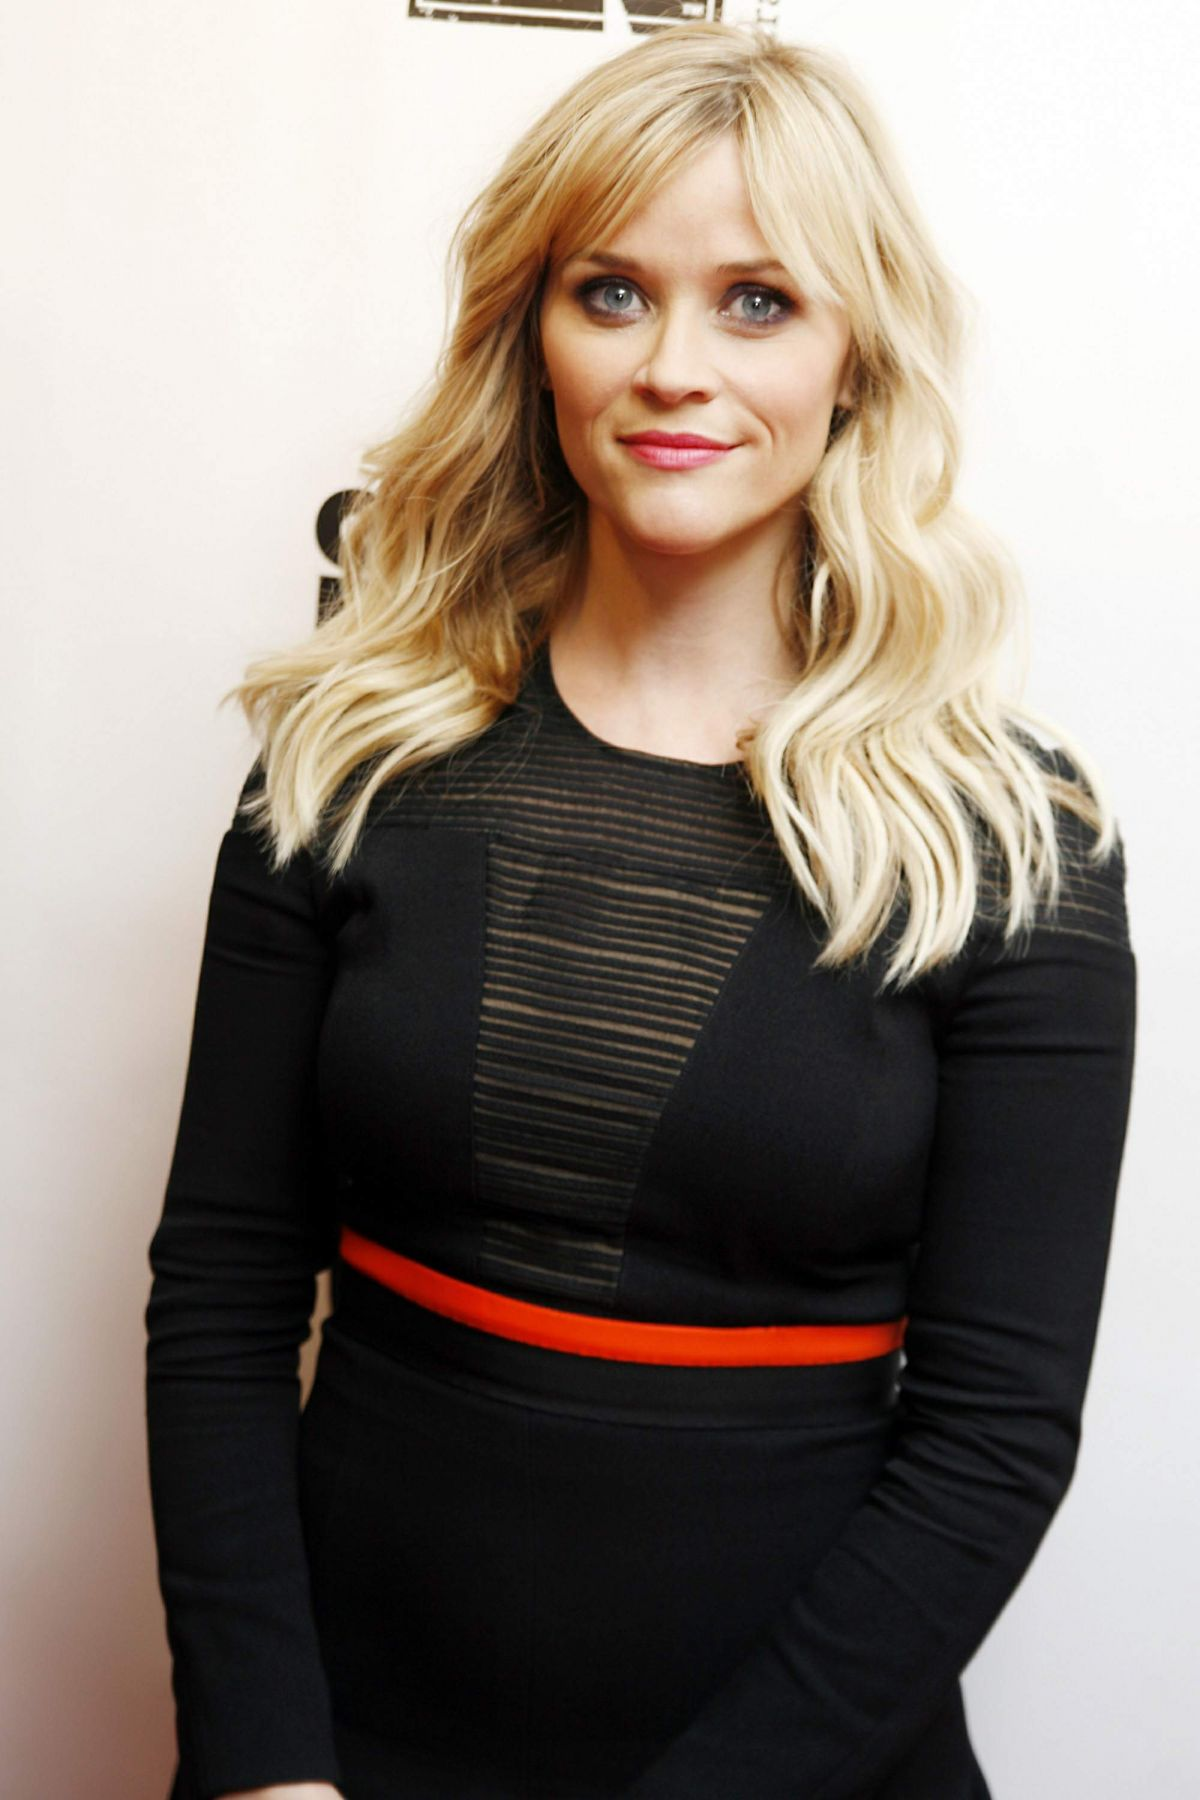 Reese Witherspoon Archives - Page 41 of 58 - HawtCelebs ... Reese Witherspoon